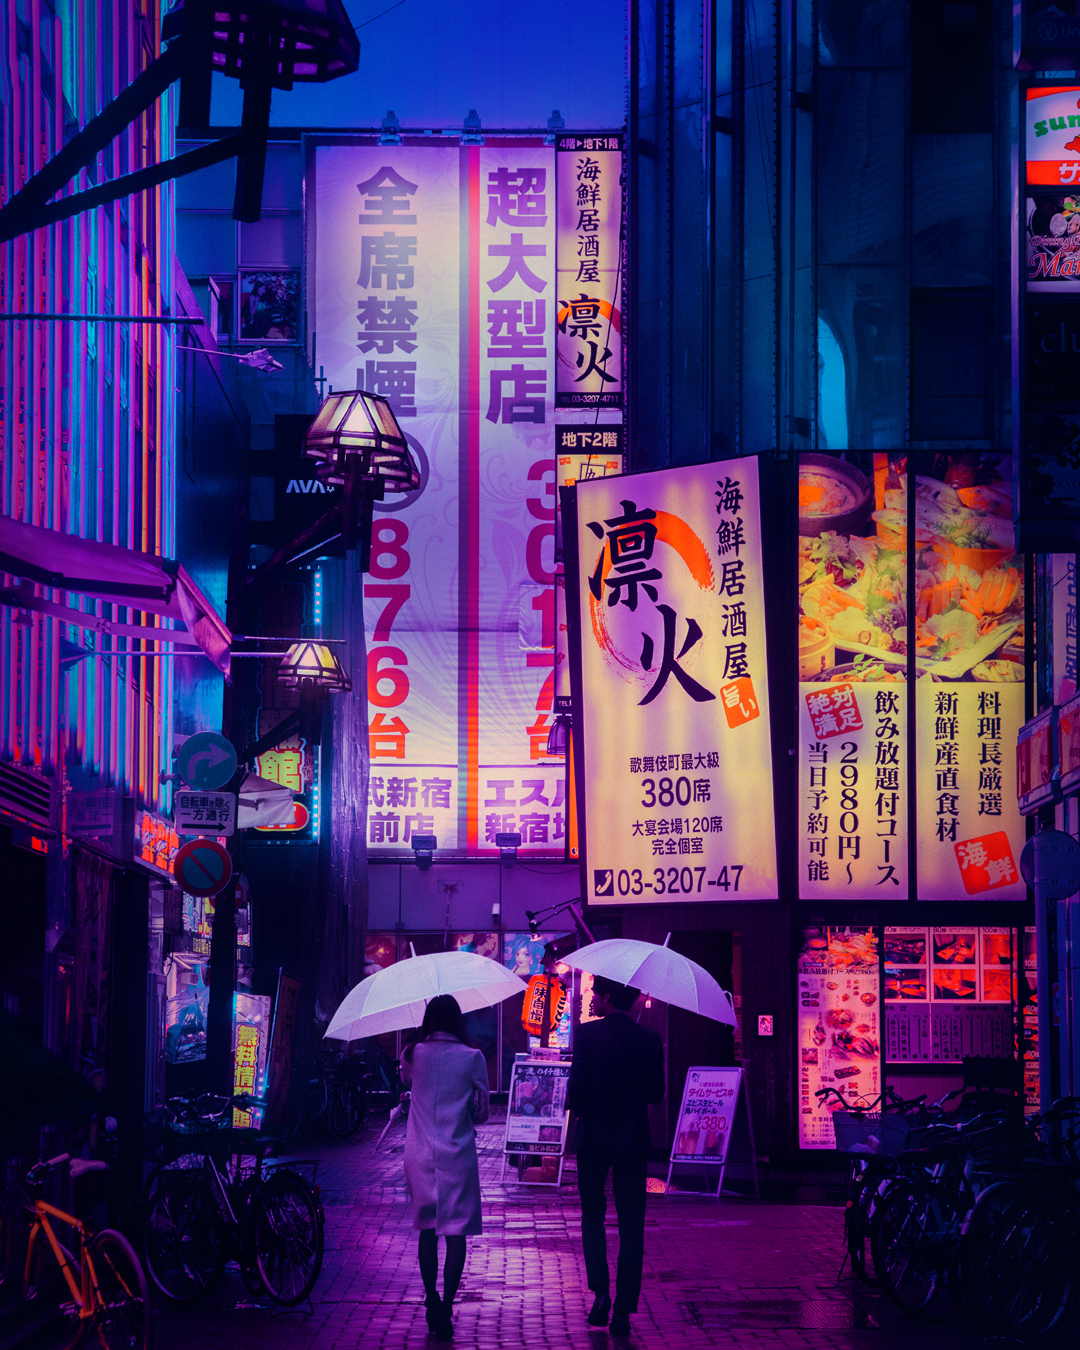 Tokyo at Night by Liam Wong